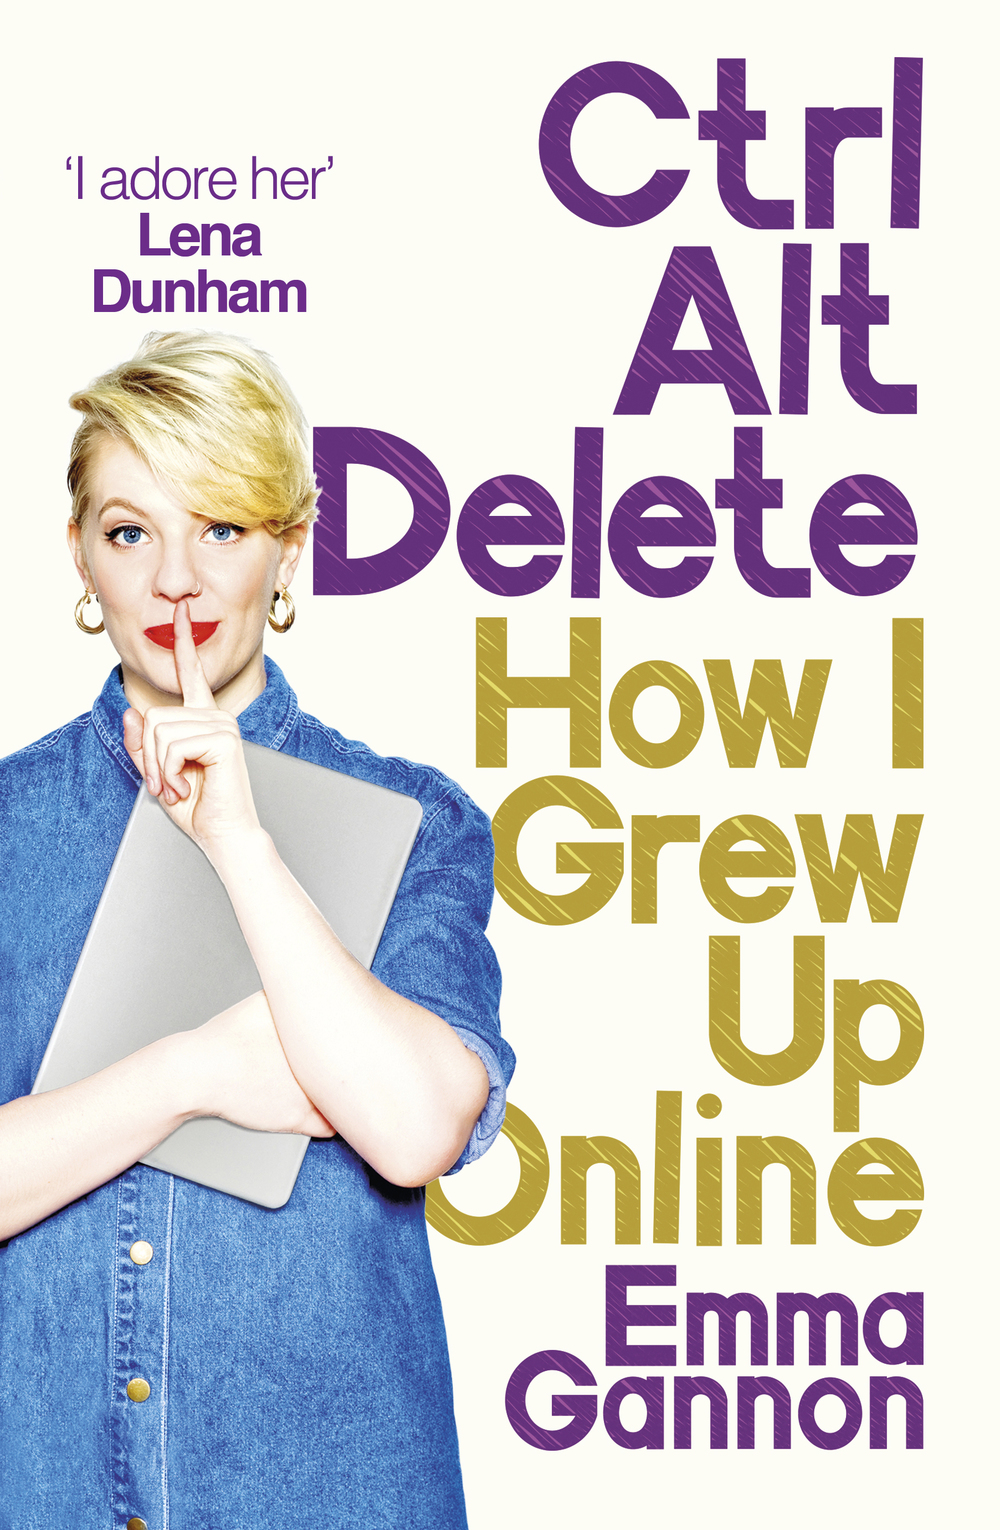 Ctrl, Alt, Delete: How I grew up online is out 7th July 2016